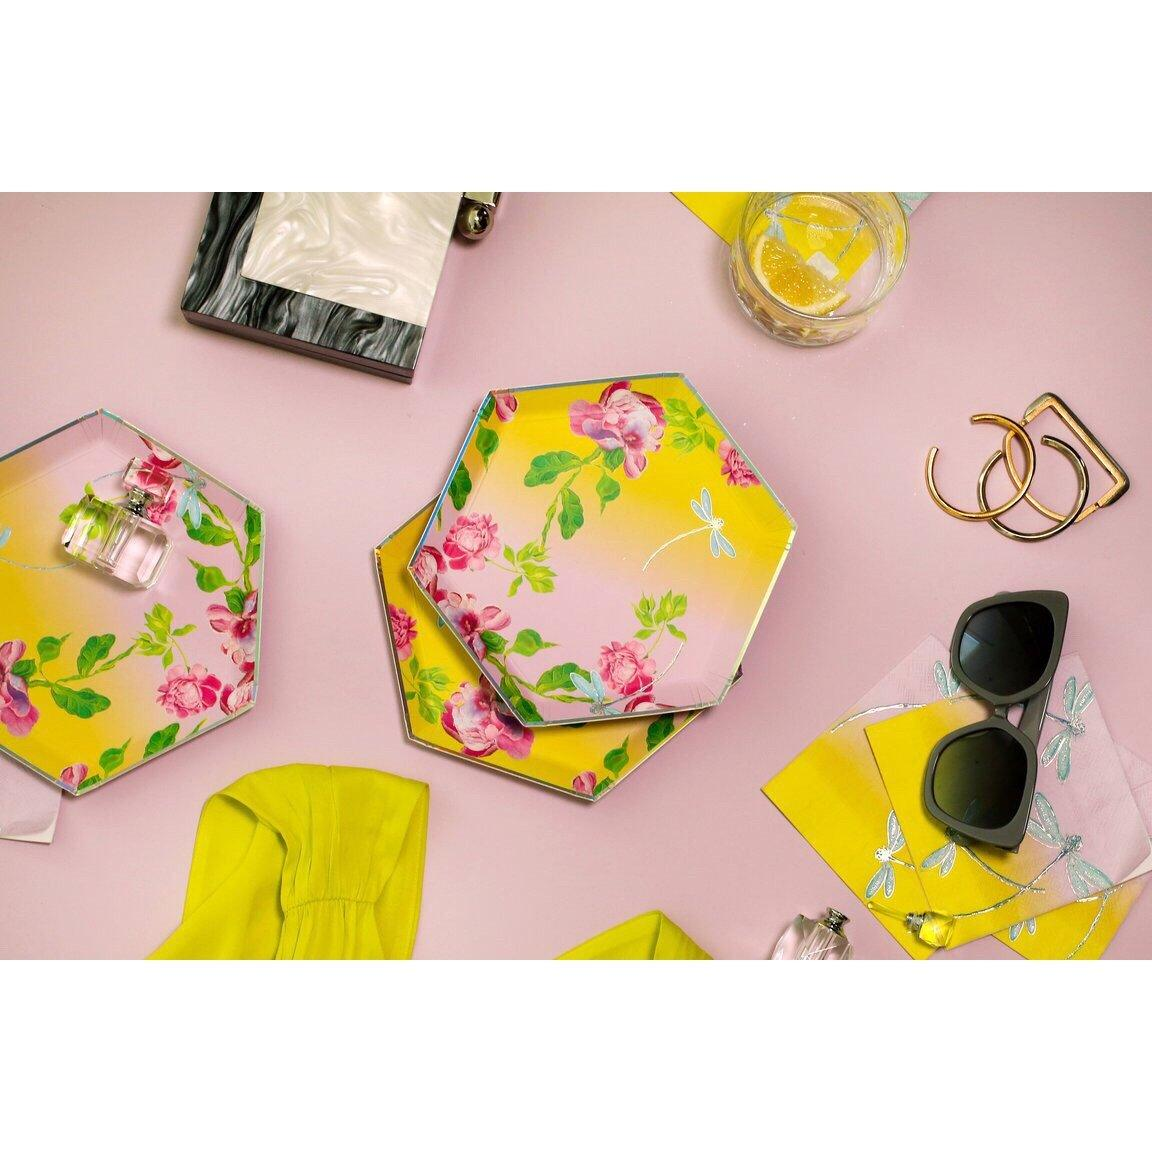 PLATES - SMALL GOLDEN HOUR FLORAL OMBRE HARLOW & GREY x CYNTHIA ROWLEY